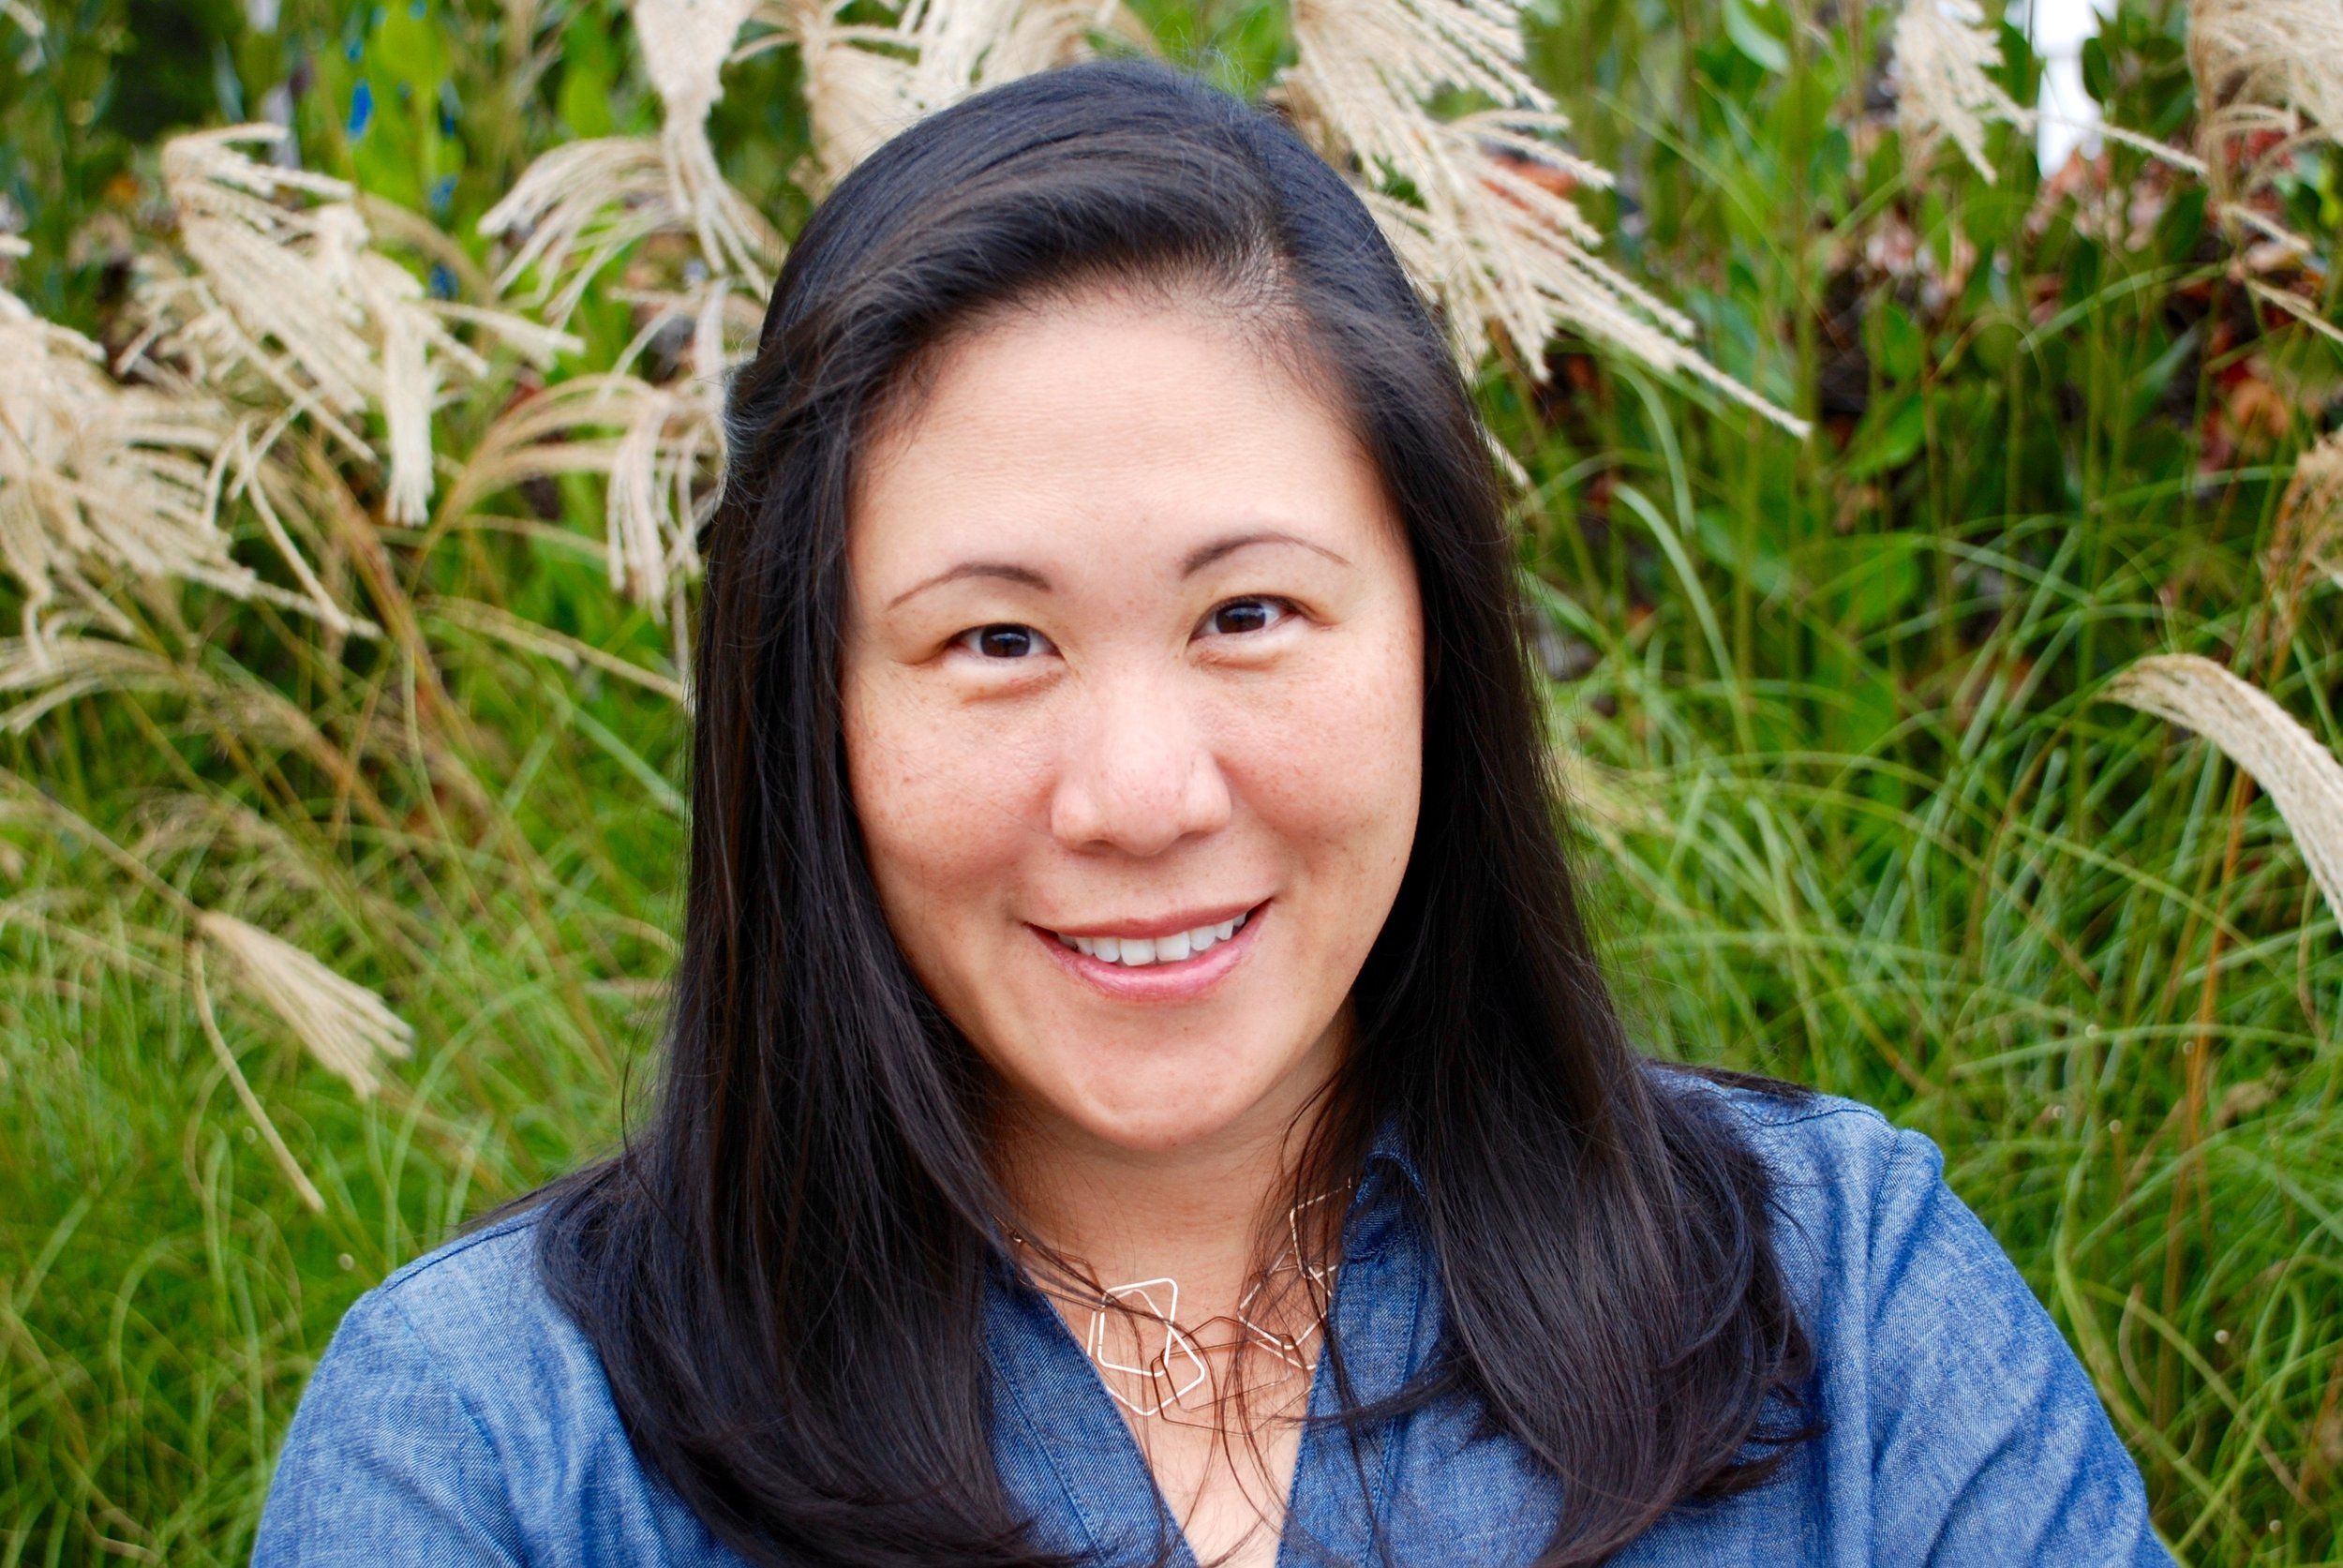 Susan Hsia Lew, MS    is a science and health writer and mother of two.  Her work as been published in Brown Medicine Magazine and the Journal of Risk Research, as well as private publications and websites of large academic hospitals, medical companies, and non-profit organization across the country.  Susan has an undergraduate Biology degree from Brown University and a Master's Degree from Harvard School of Public Health, where she specialized in social determinants of health, behavior change, and health communication.     A lifelong musician, Susan is currently a signer with pacific chorale and serves on the Board of Directors for Pacific Symphony Youth Ensembles.